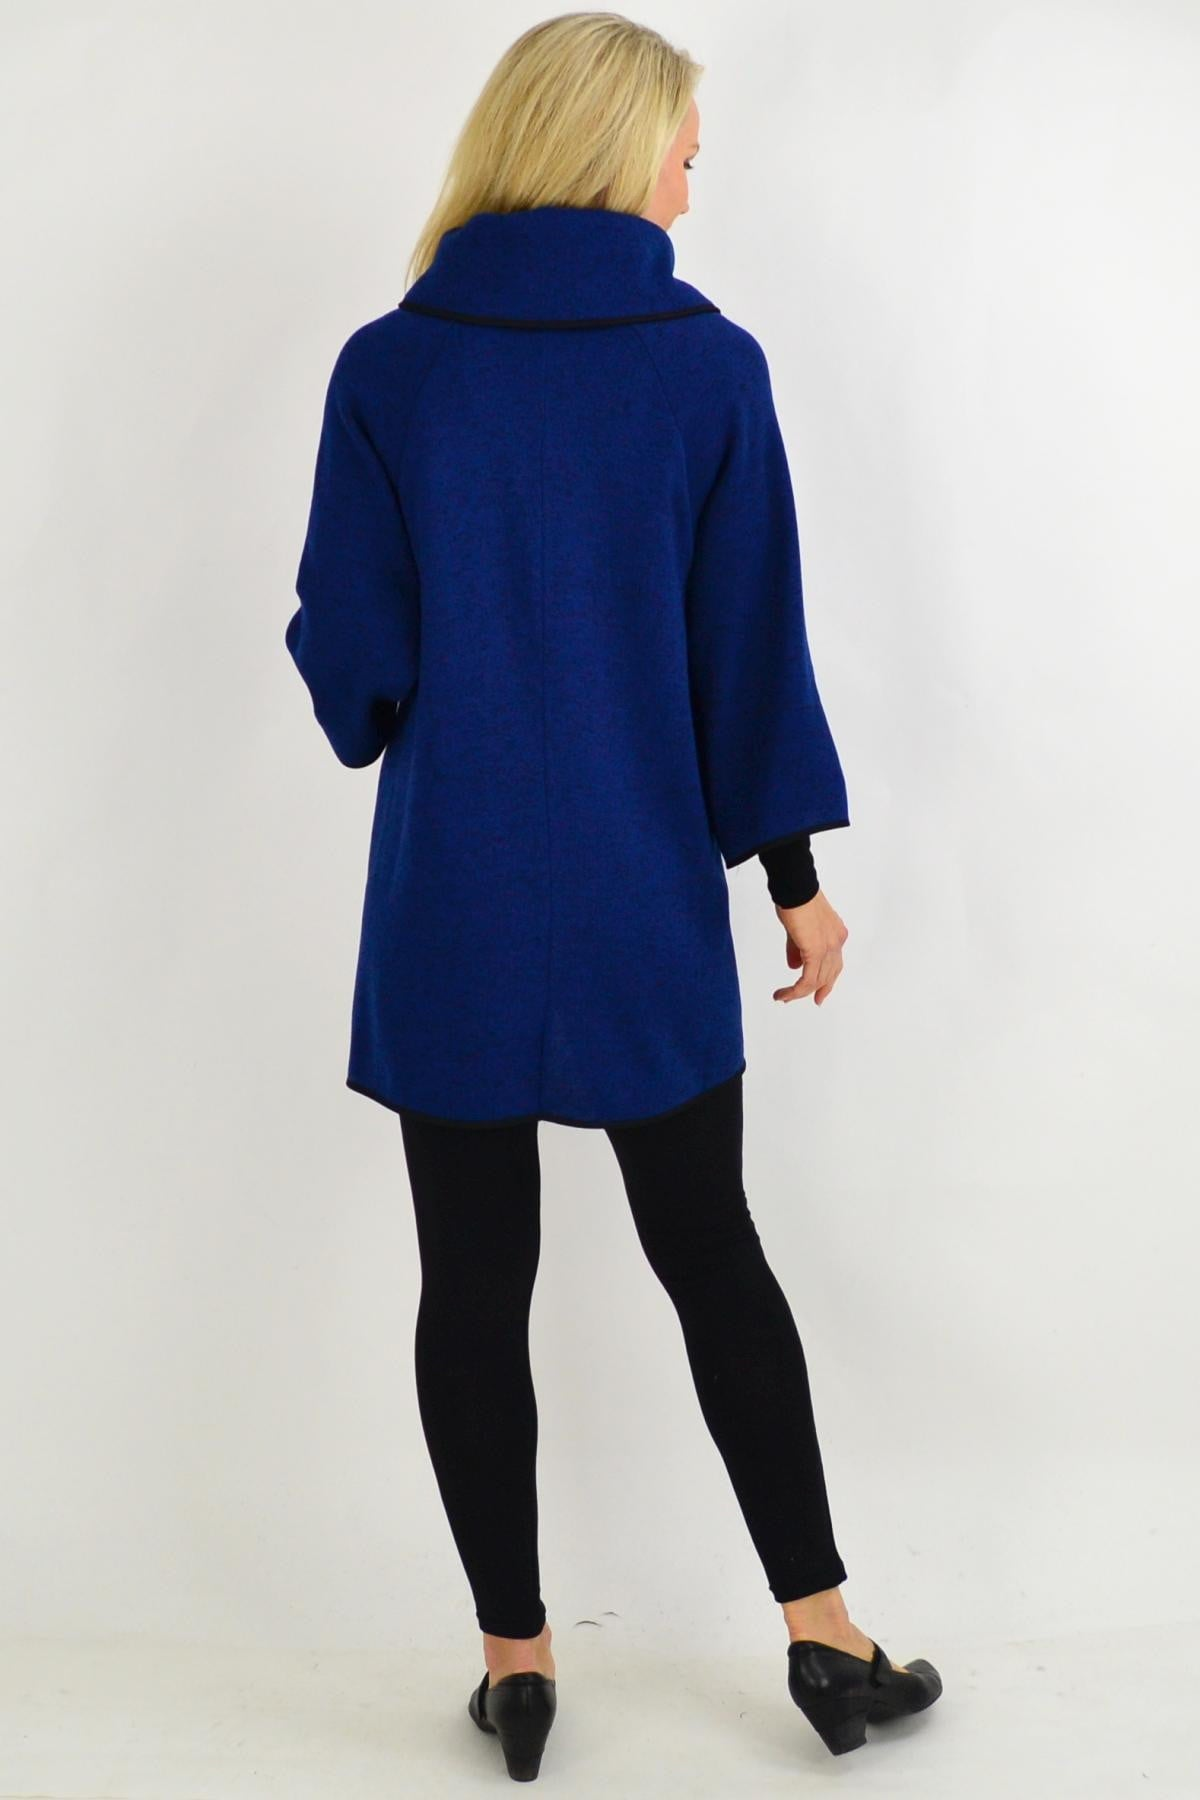 Black Trim Navy Collar Cape | I Love Tunics | Tunic Tops | Tunic | Tunic Dresses  | womens clothing online